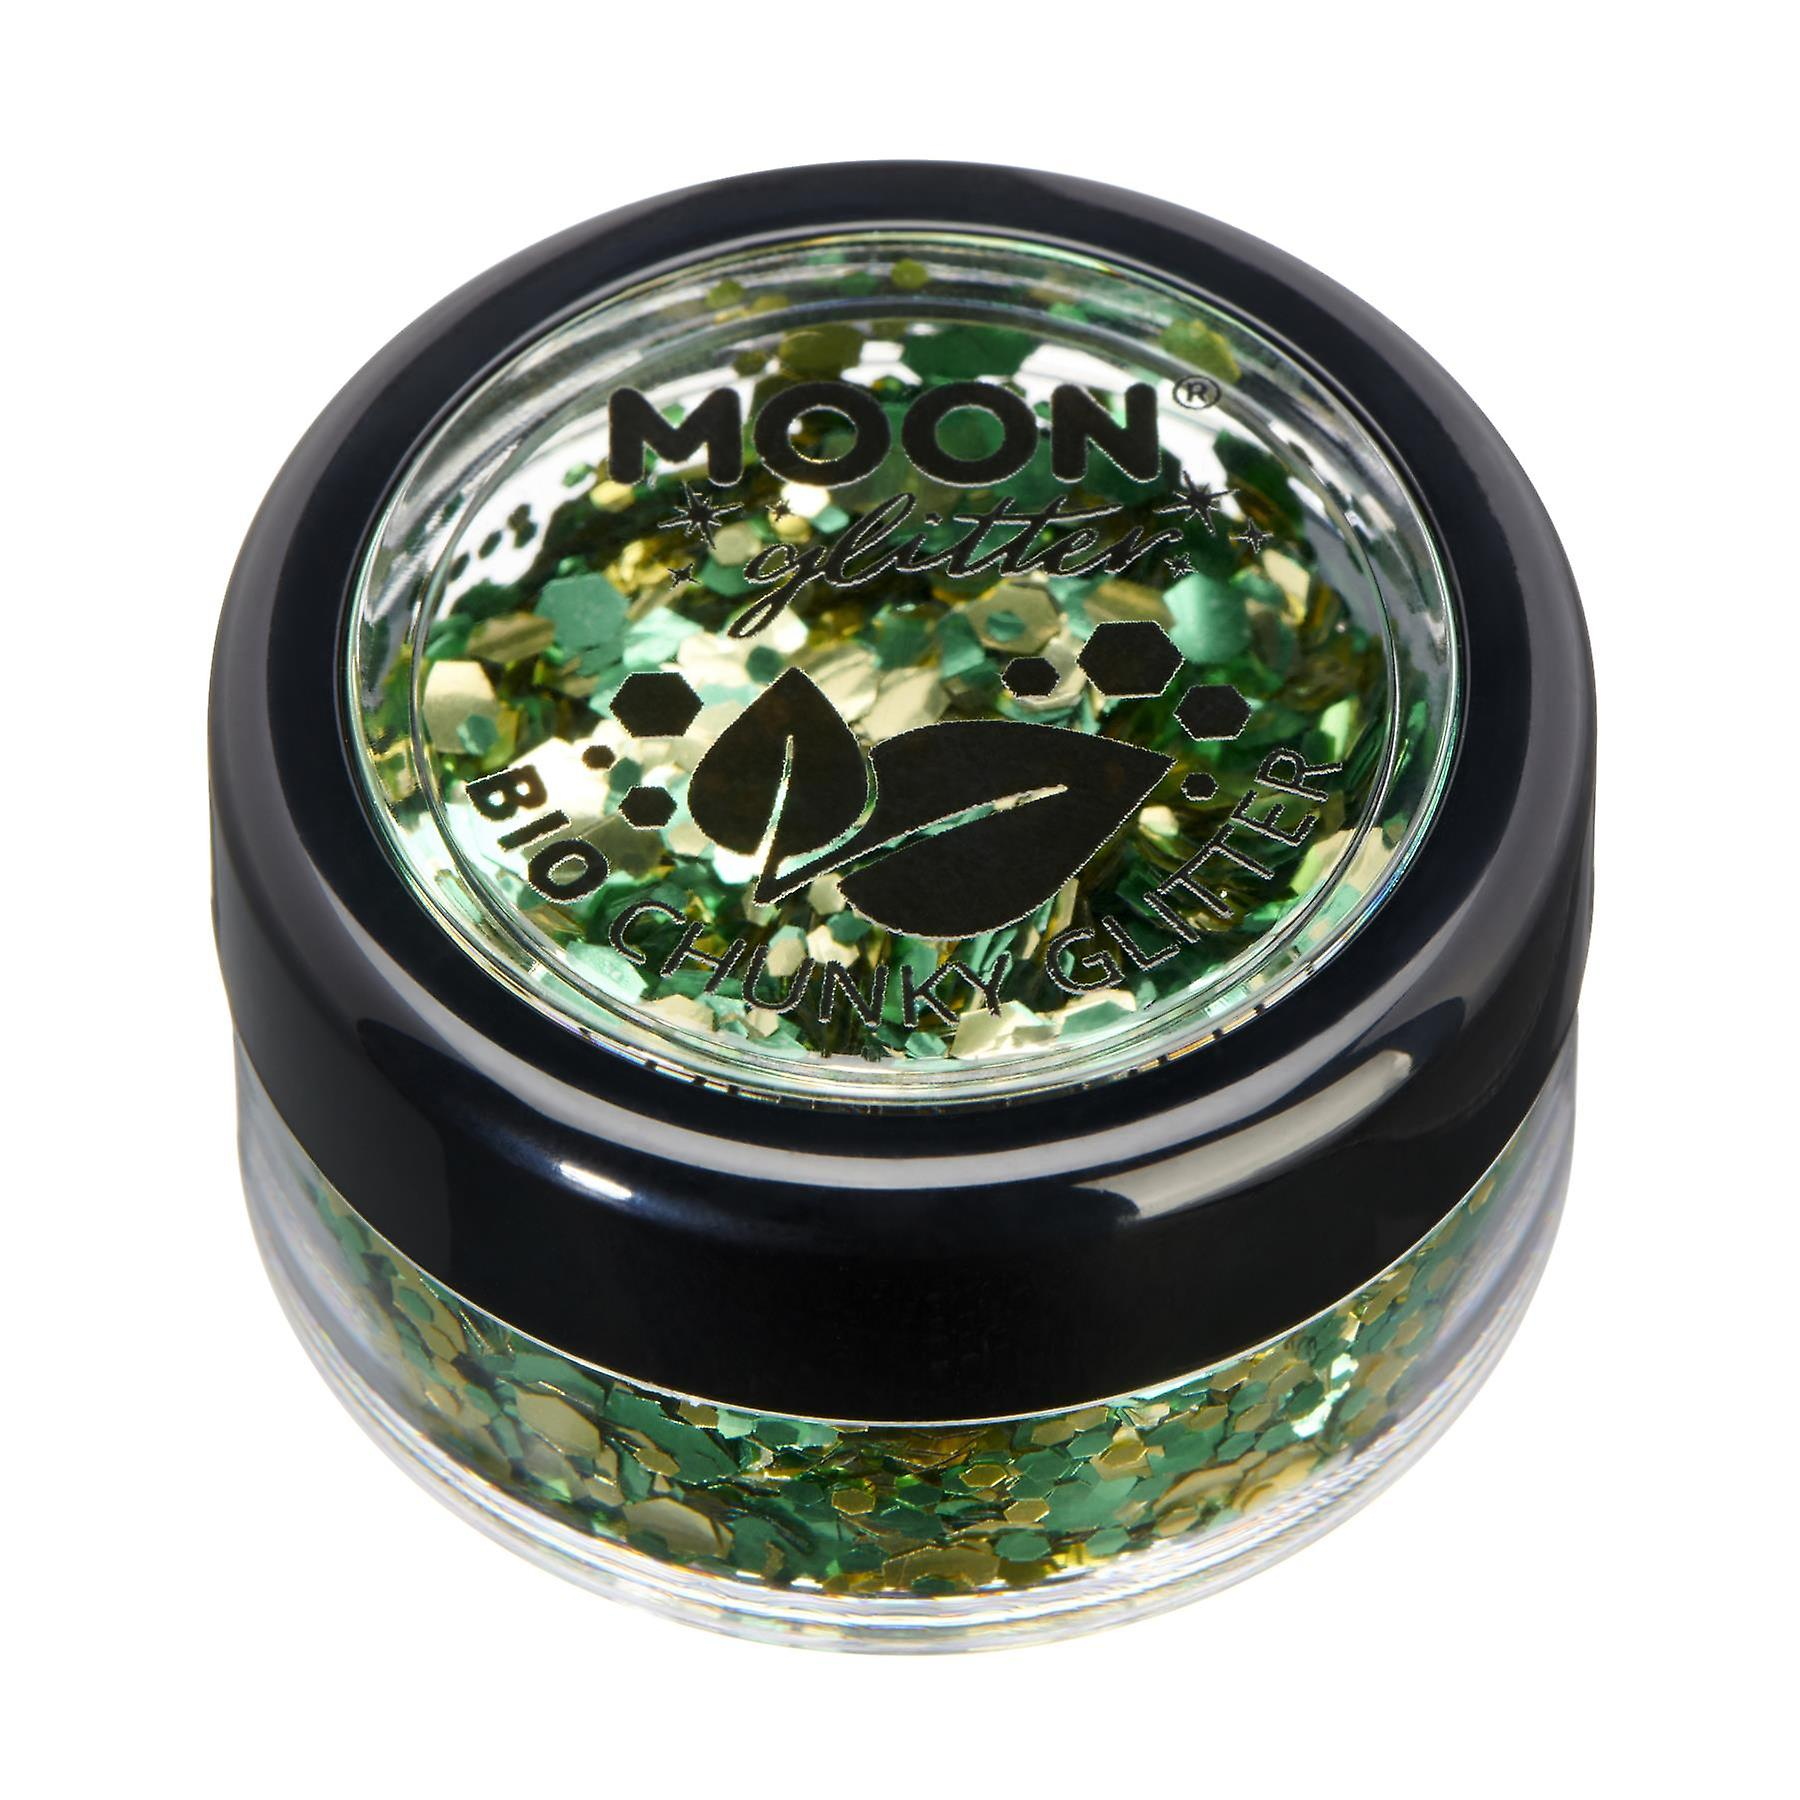 Mystic Bio Biodegradable Eco Chunky Glitter by Moon Glitter - 100% Cosmetic Bio Glitter for Face, Body, Nails, Hair and Lips - 3g - Shamrock